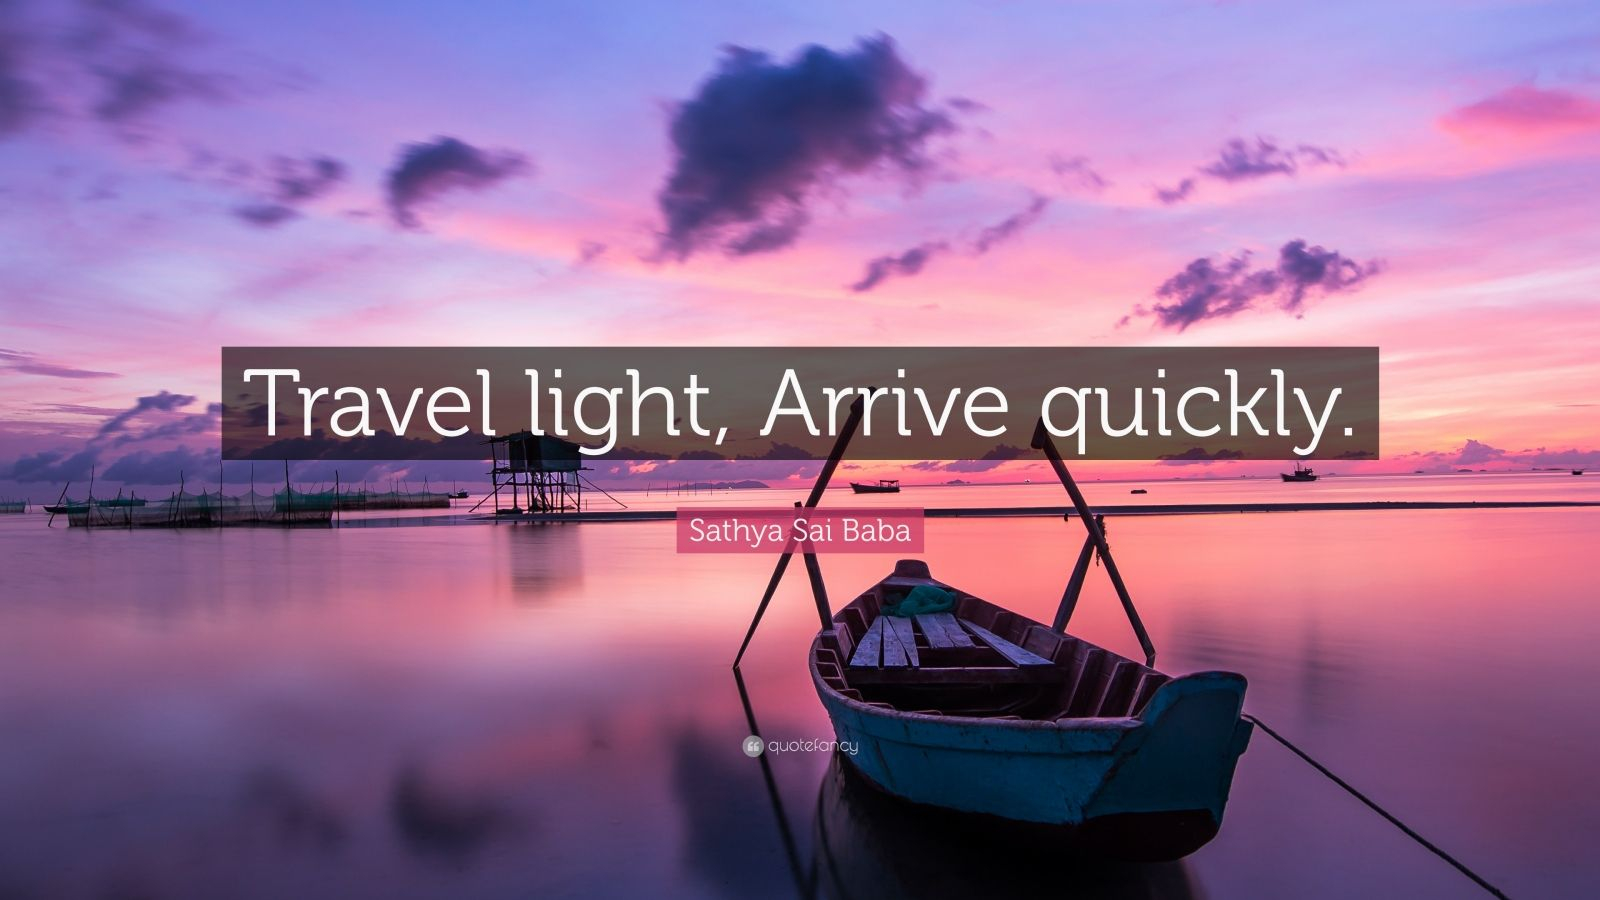 Sathya Sai Baba Quote: U201cTravel Light, Arrive Quickly.u201d